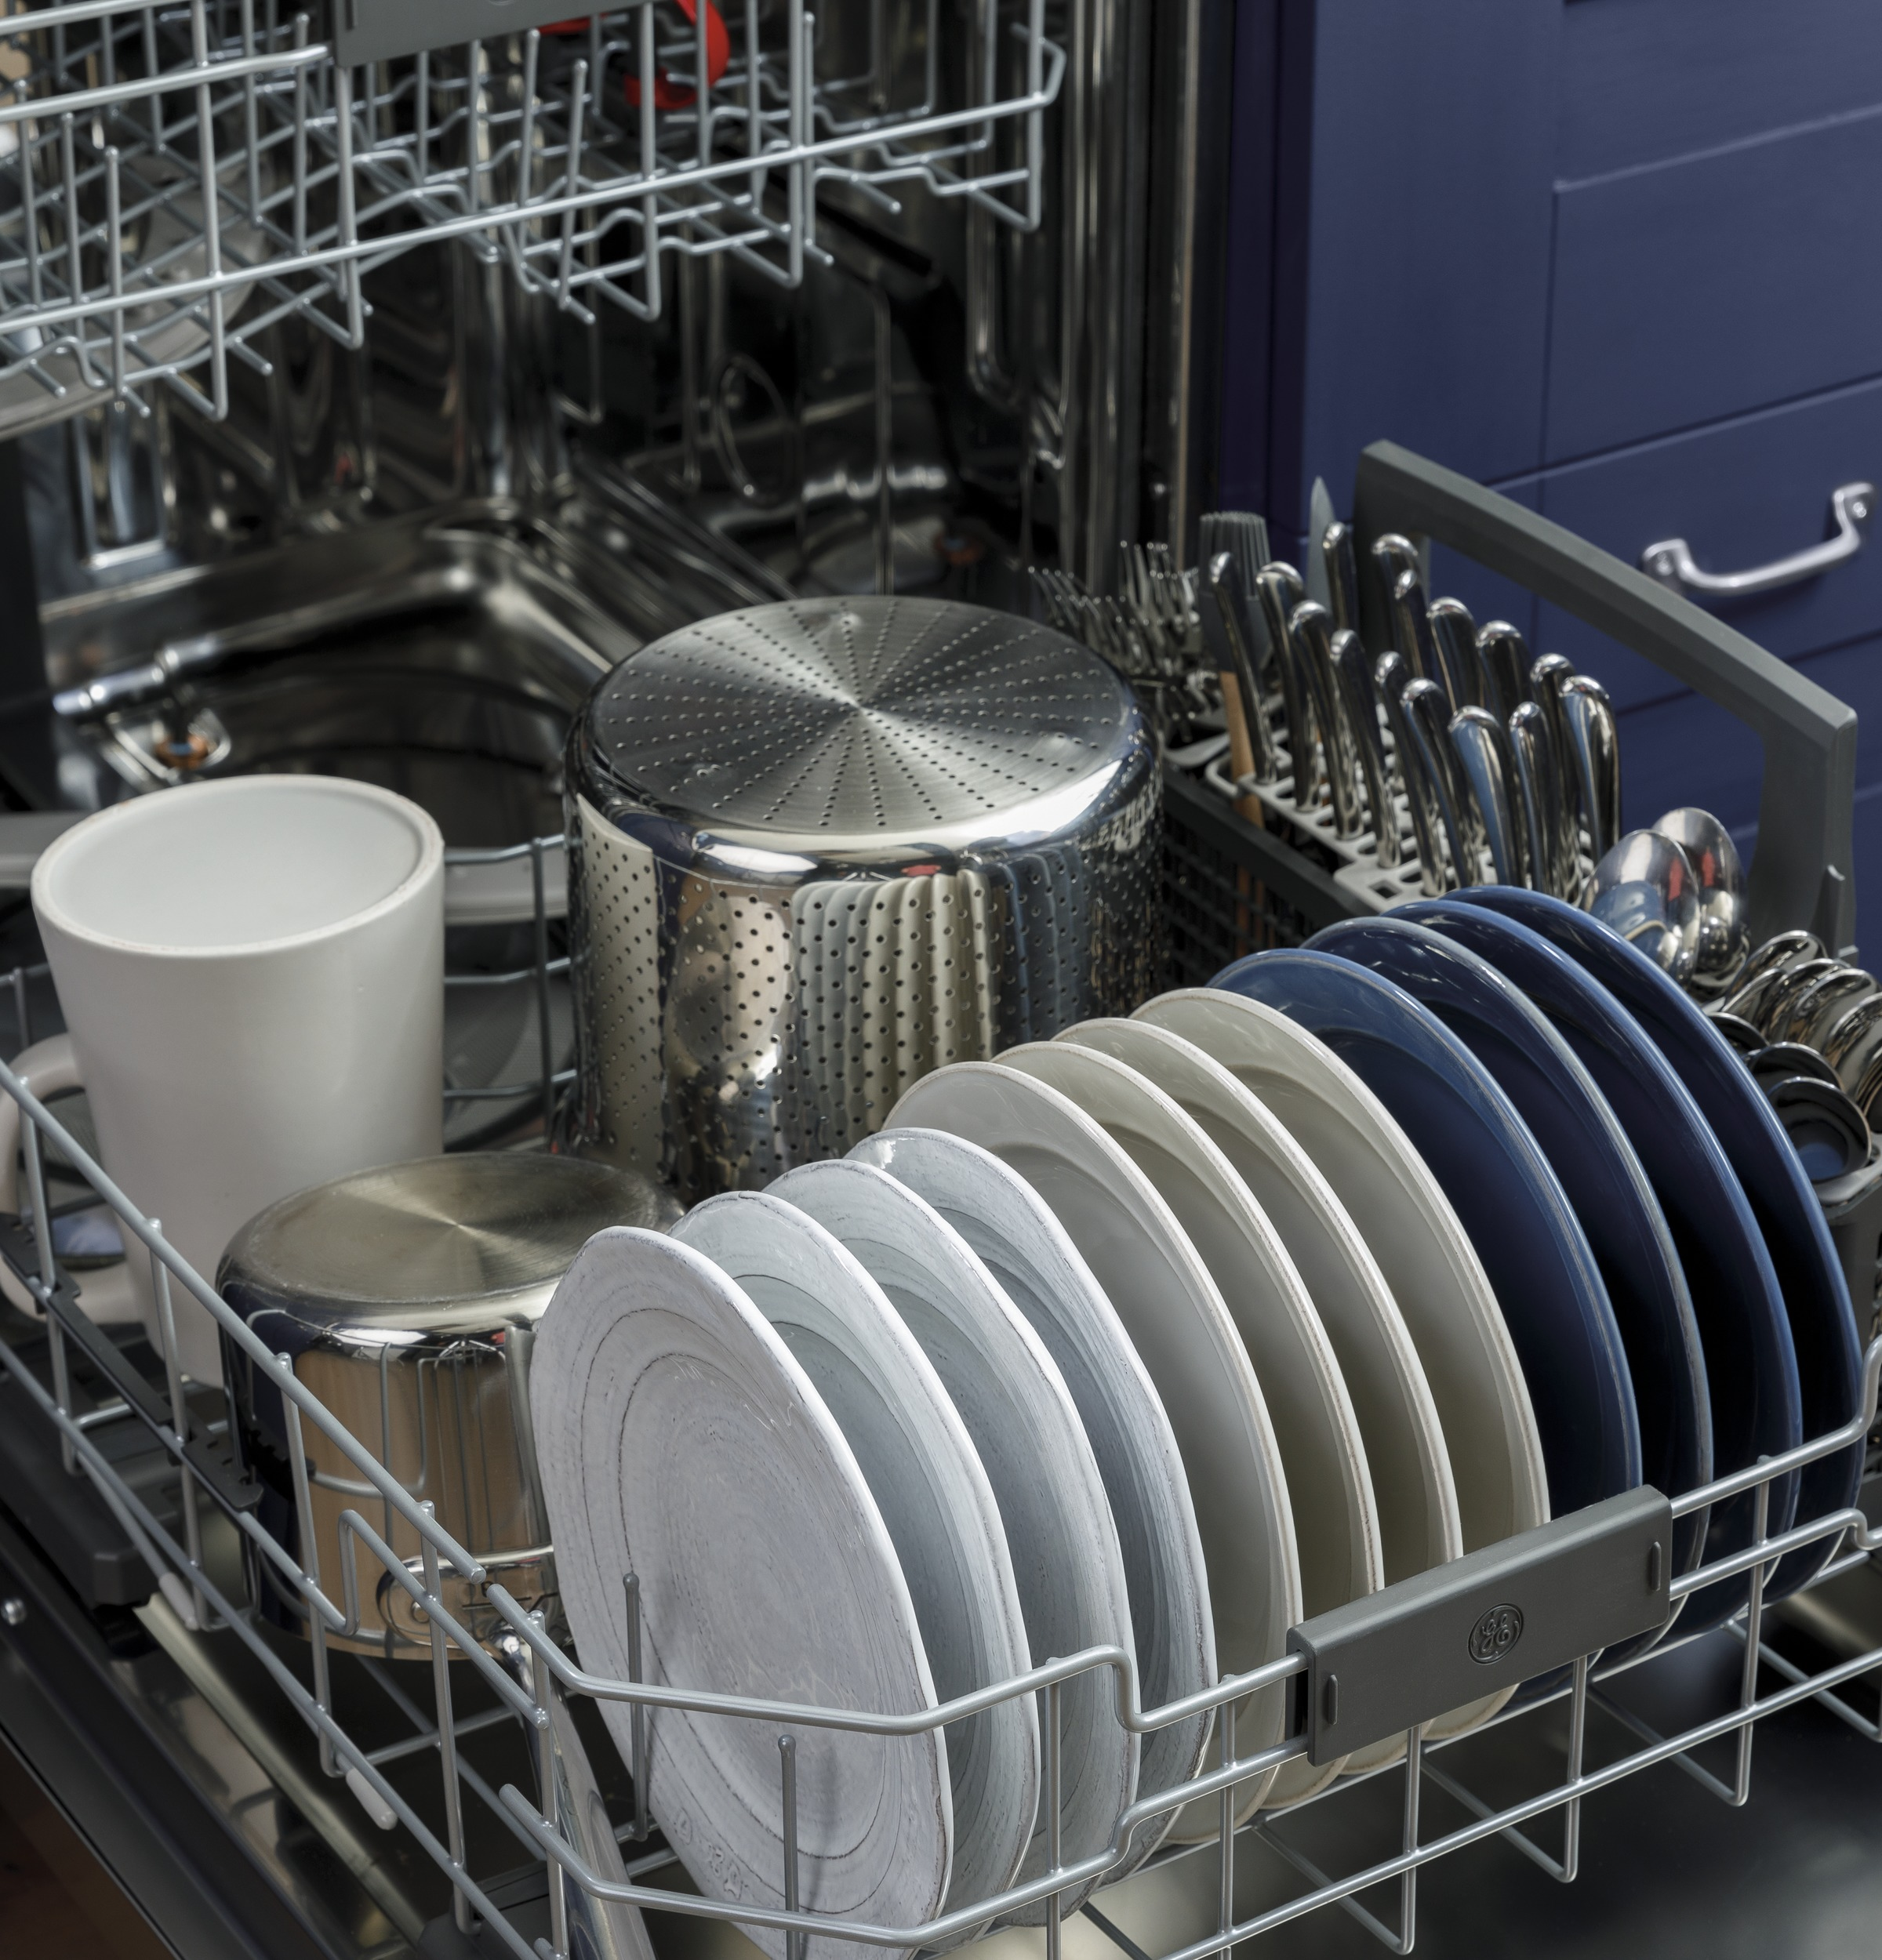 Model: GDT645SSNSS   GE GE® Top Control with Stainless Steel Interior Dishwasher with Sanitize Cycle & Dry Boost with Fan Assist